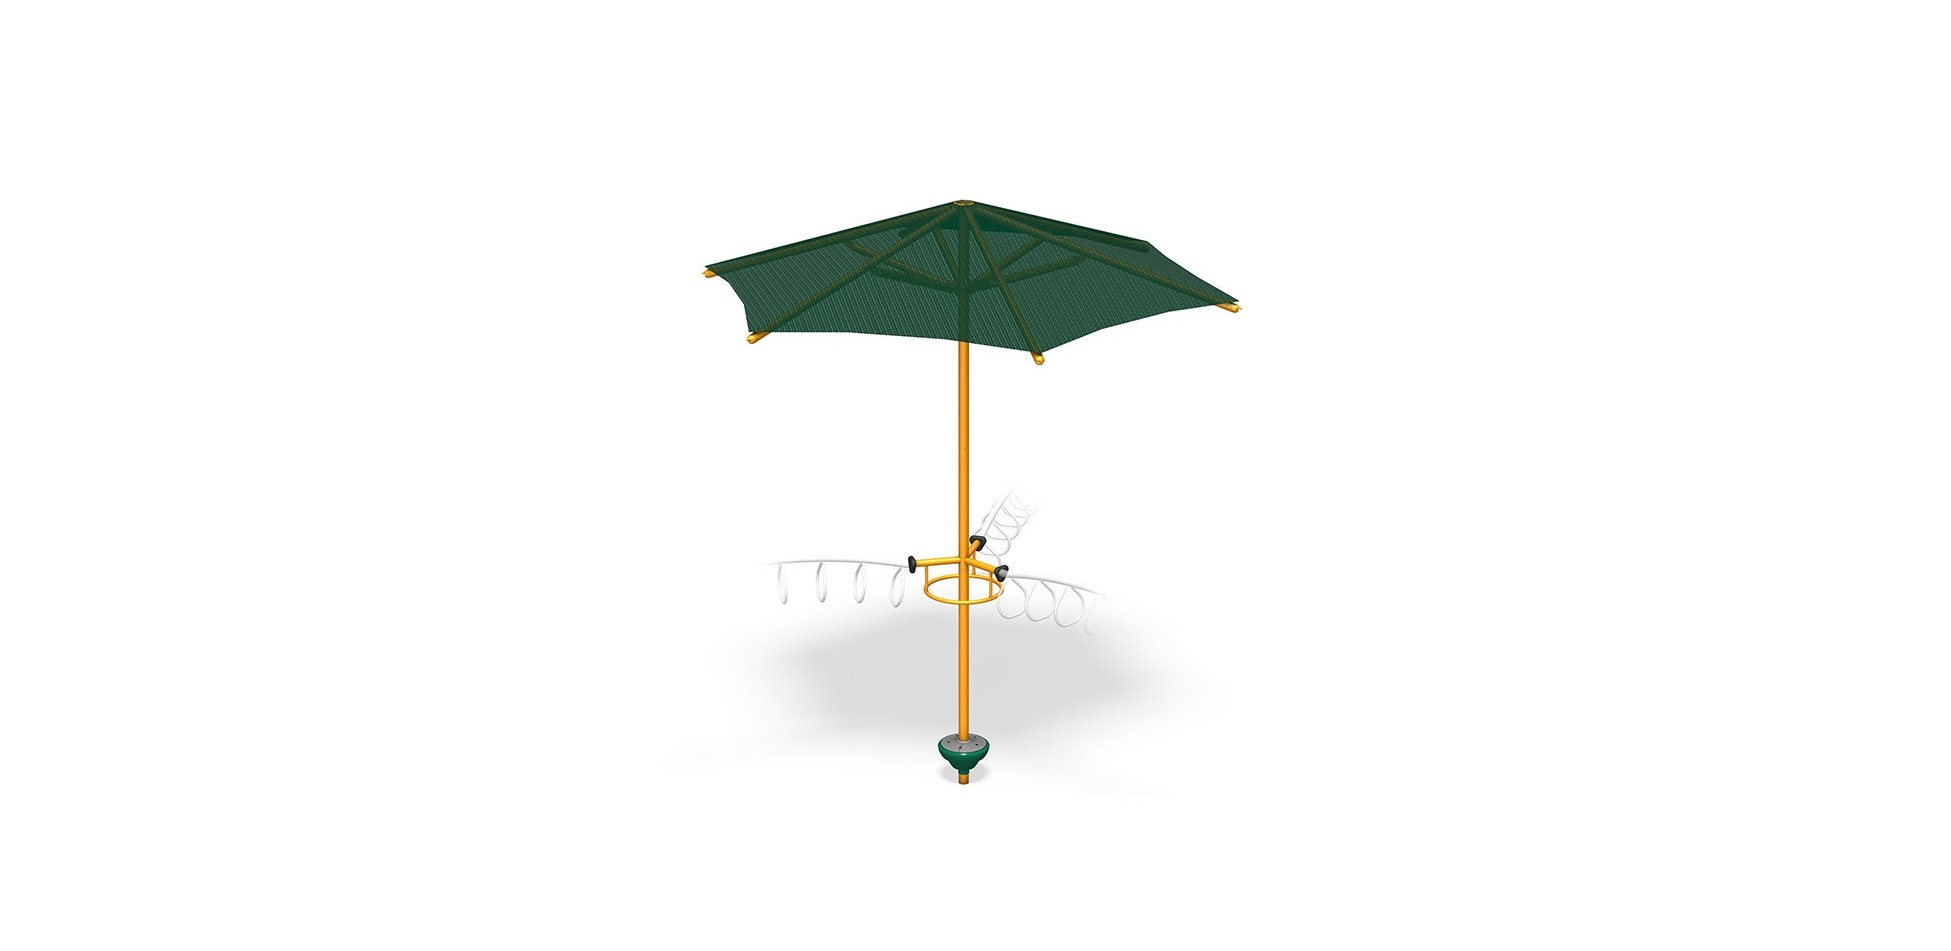 3-Way X-Pod Step with Umbrella